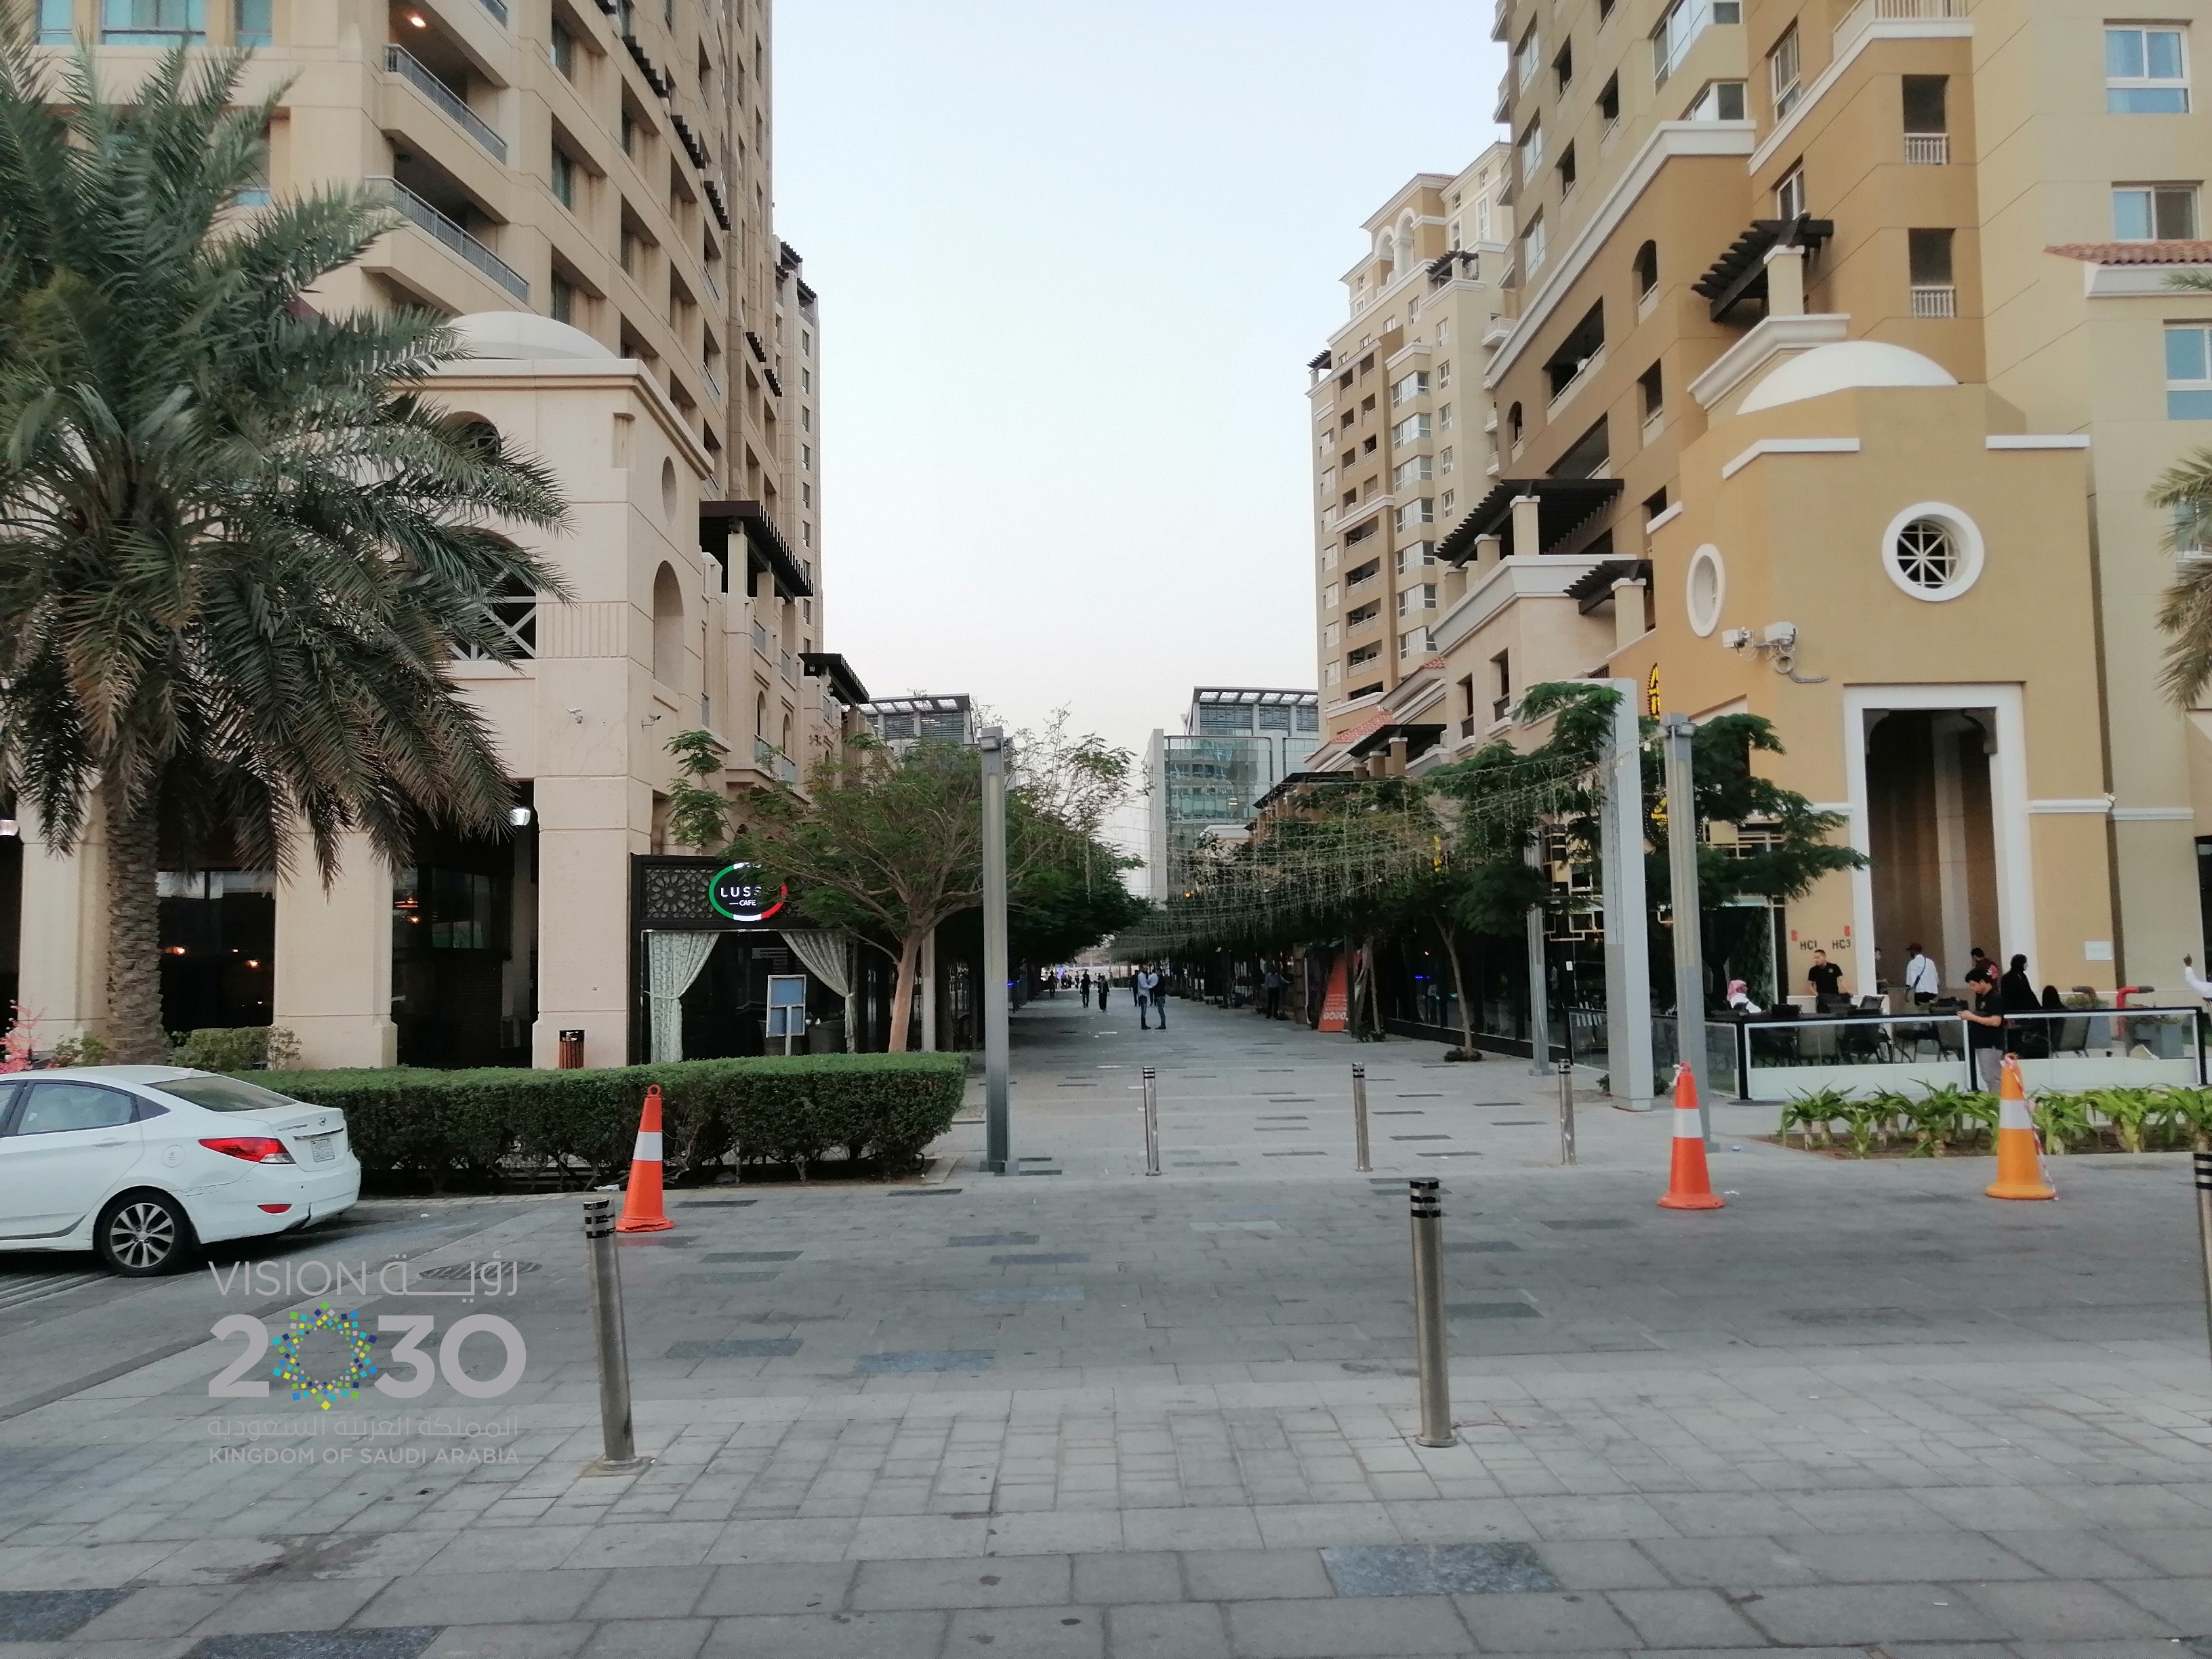 <br /> <b>Notice</b>:  Undefined variable: https://s3-ap-southeast-1.amazonaws.com/mycrm-pro-accounts-v2/property/full/1908/wYqJNMBFh3HOKWtW.jpeg in <b>/home/a2erfg/public_html/livingcompound.com/index.php</b> on line <b>813</b><br />